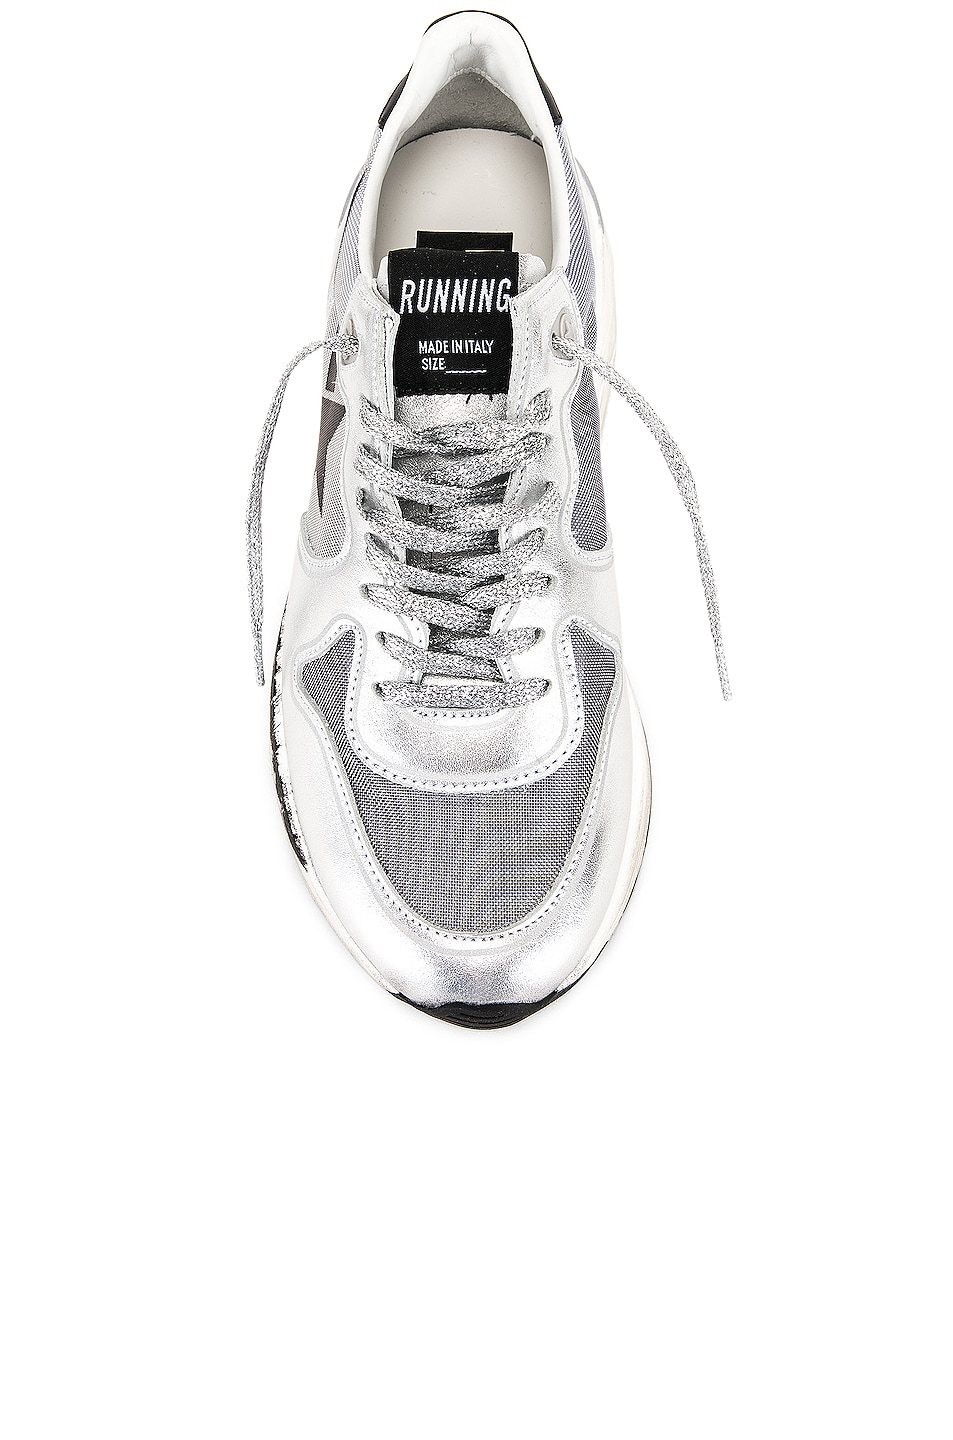 Image 4 of Golden Goose Running Sole Sneakers in Silver Net & Black Star